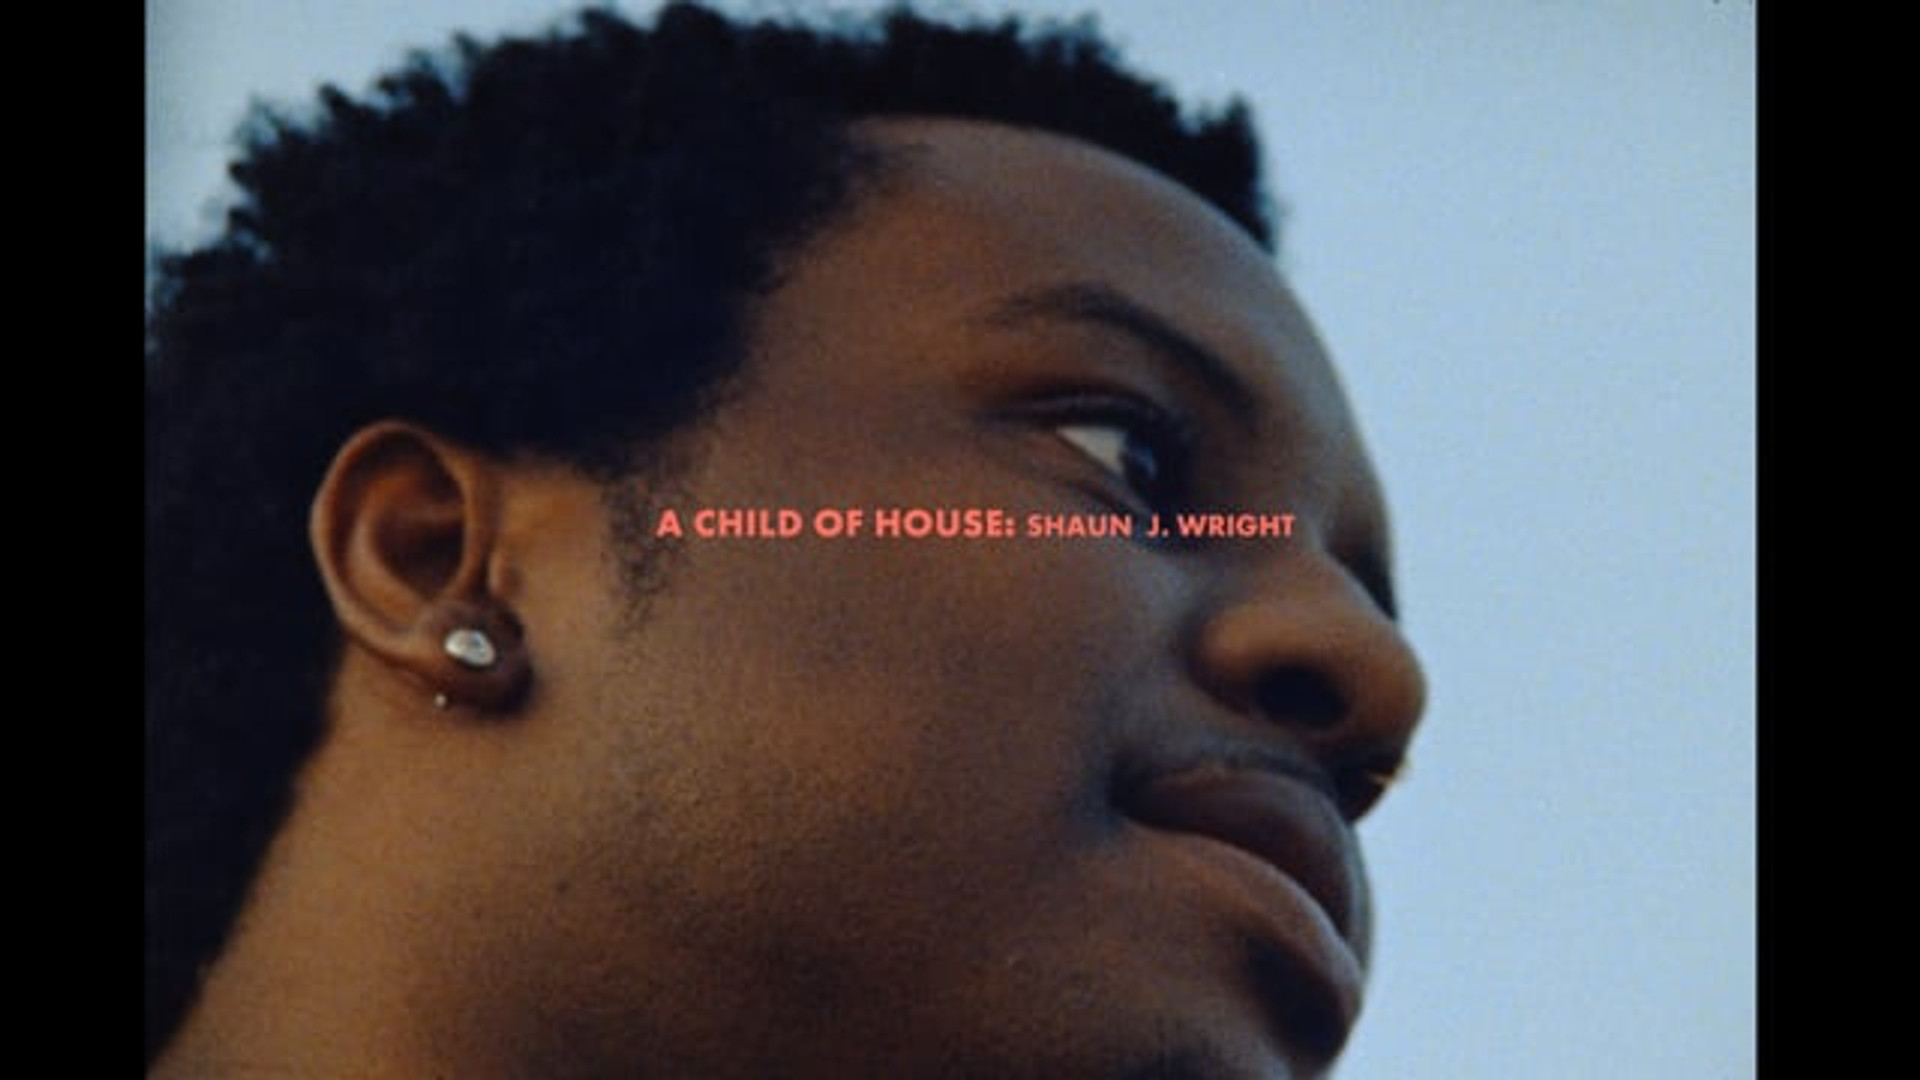 A CHILD OF HOUSE: SHAUN J. WRIGHT SUBTERRANEANS N°2 SHORT FILM